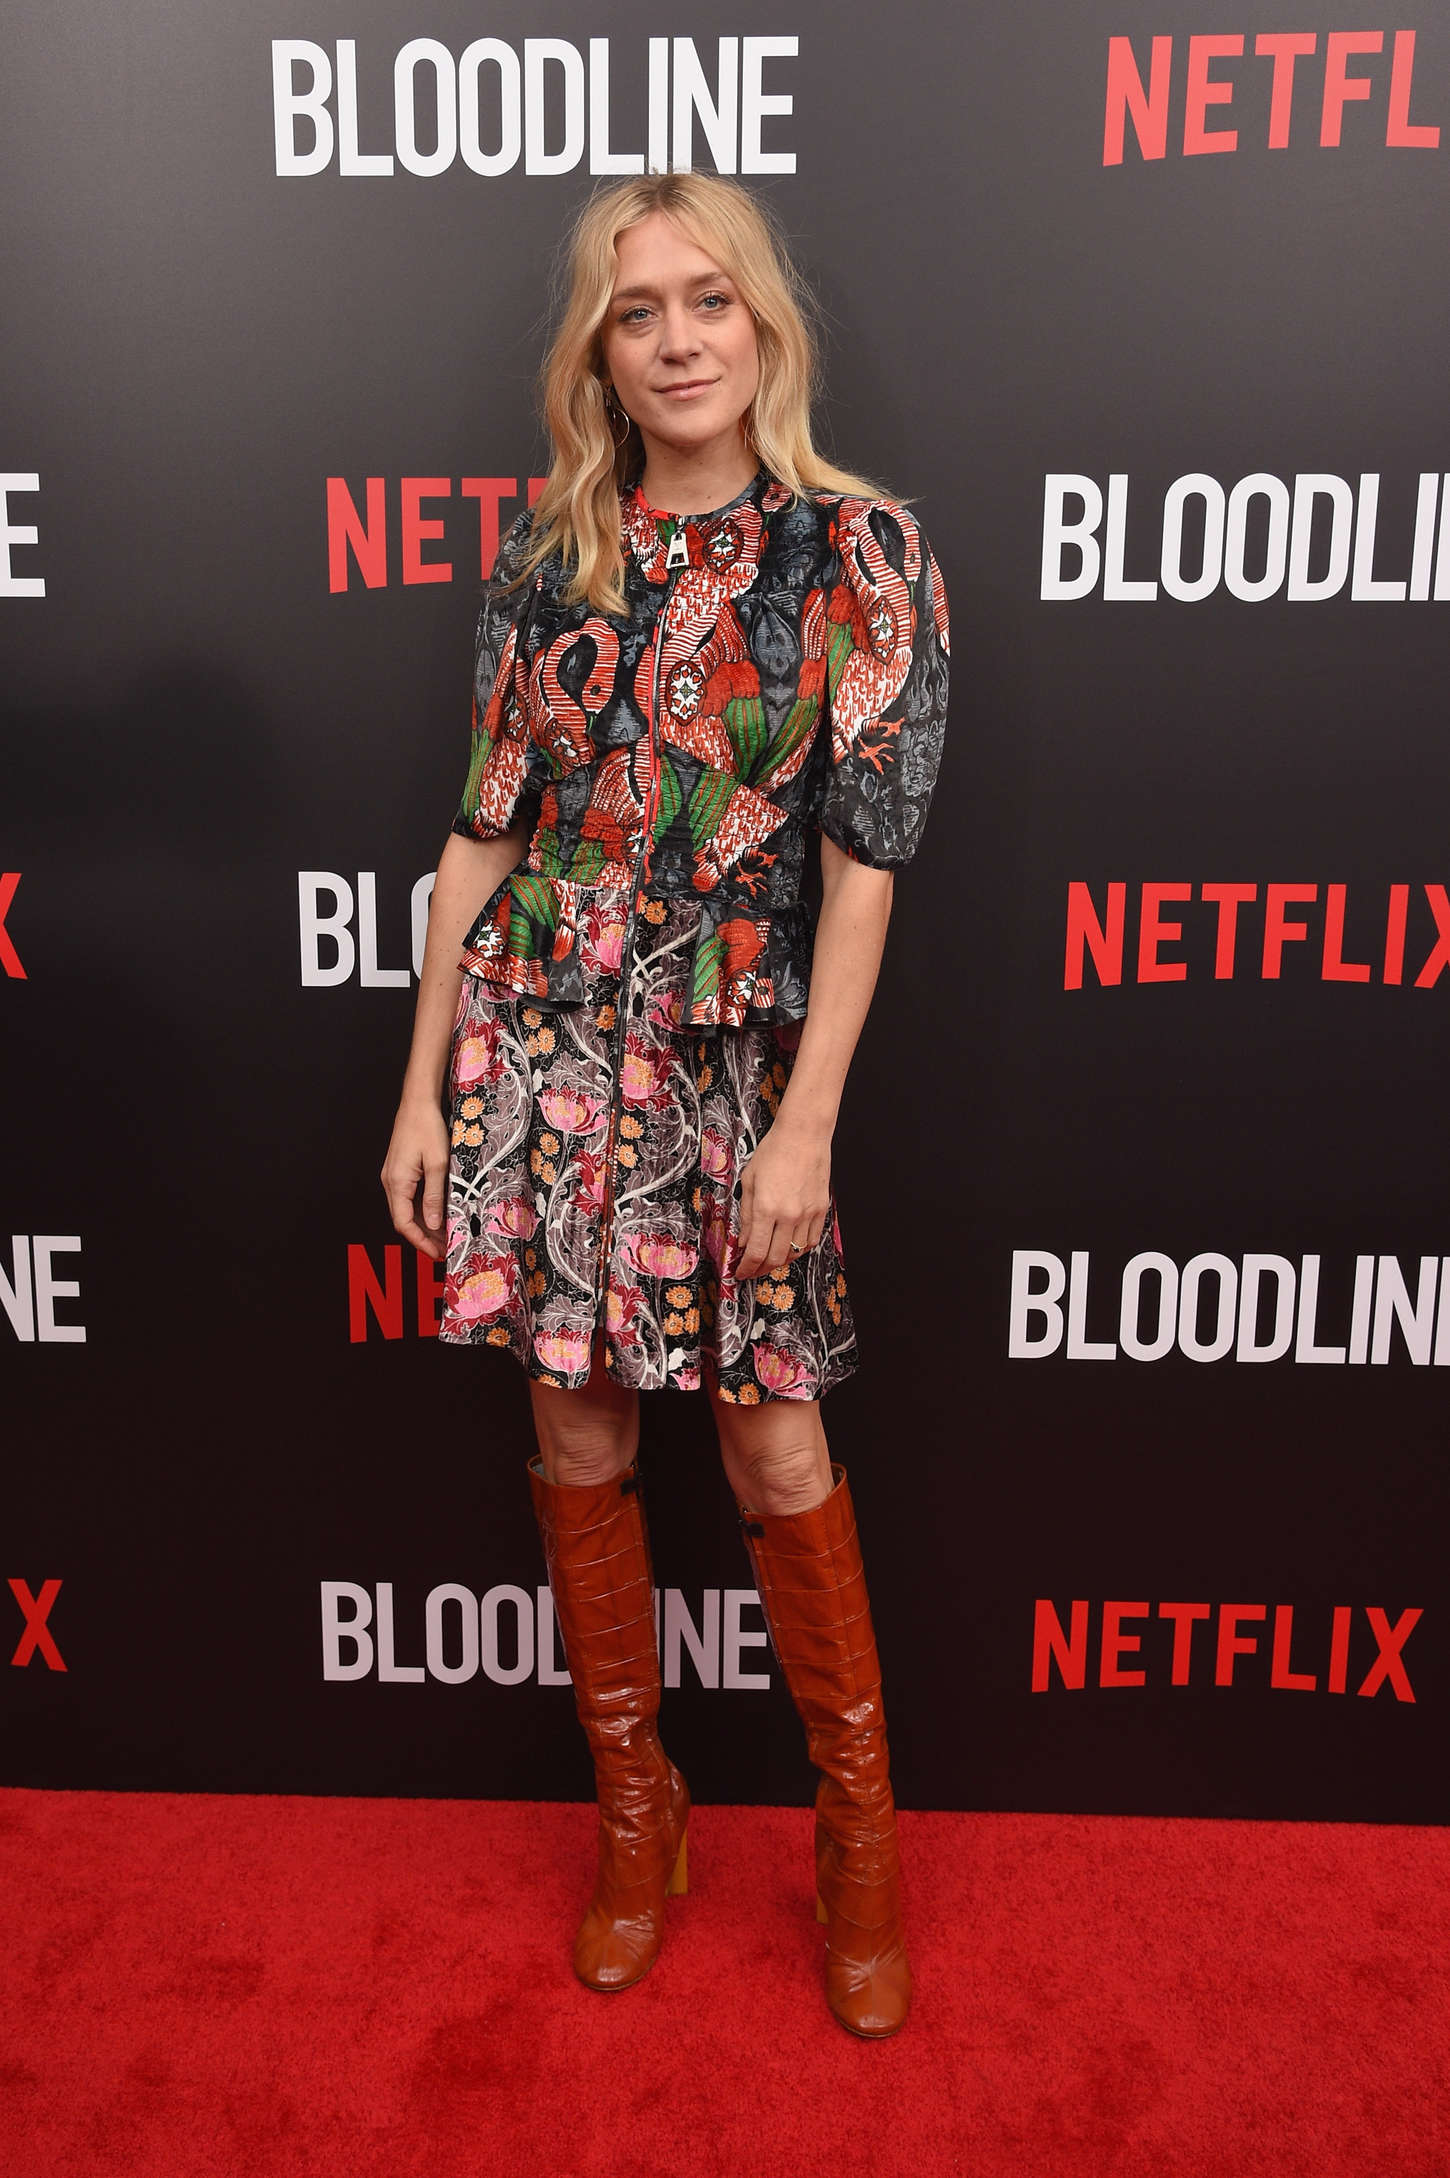 Chloe Sevigny Bloodline Series Premiere in New York